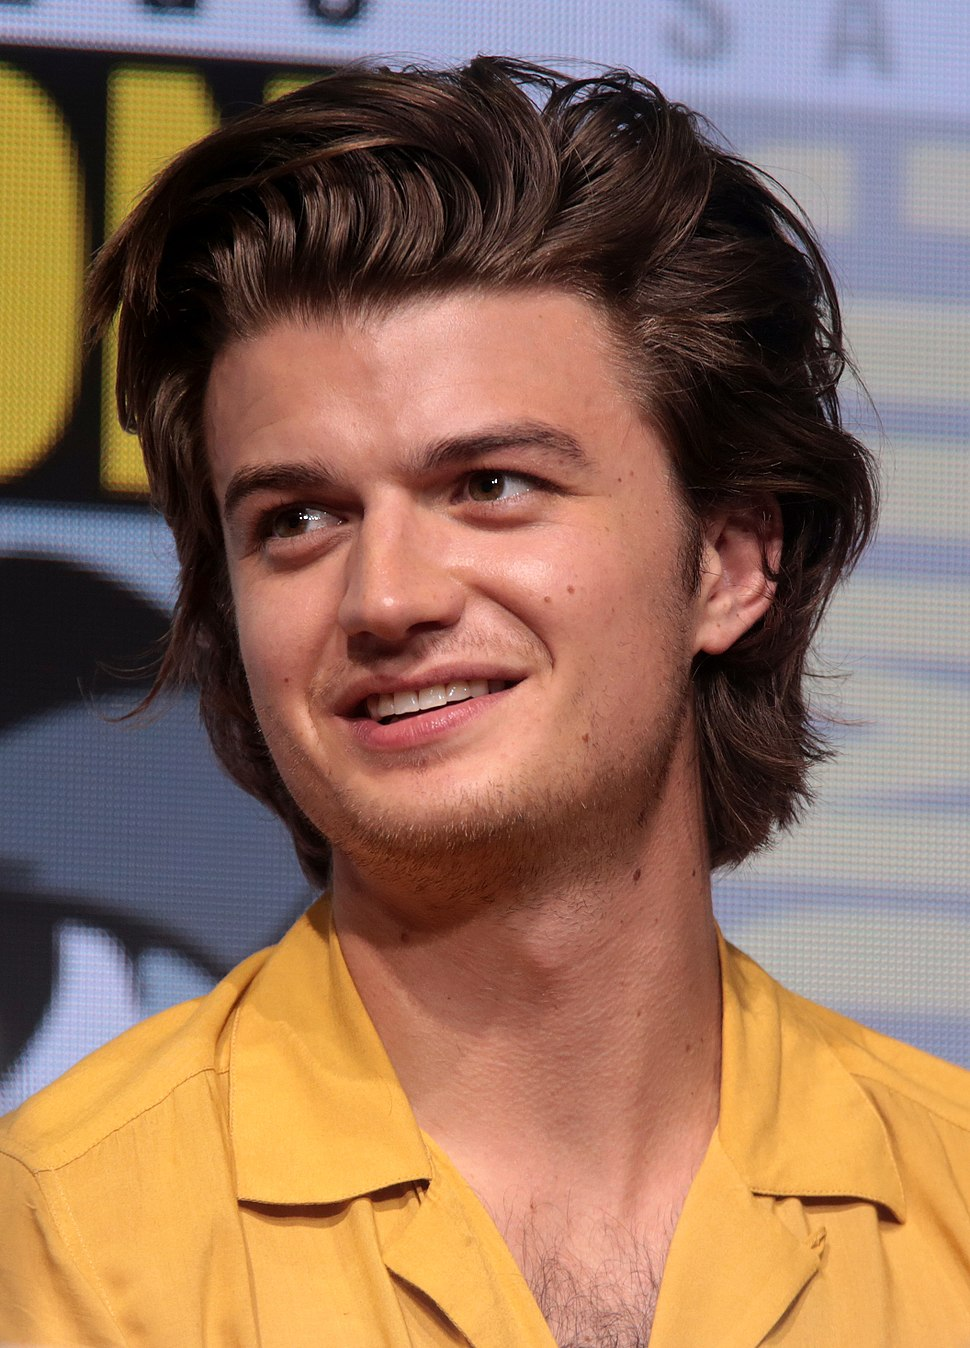 Joe Keery by Gage Skidmore